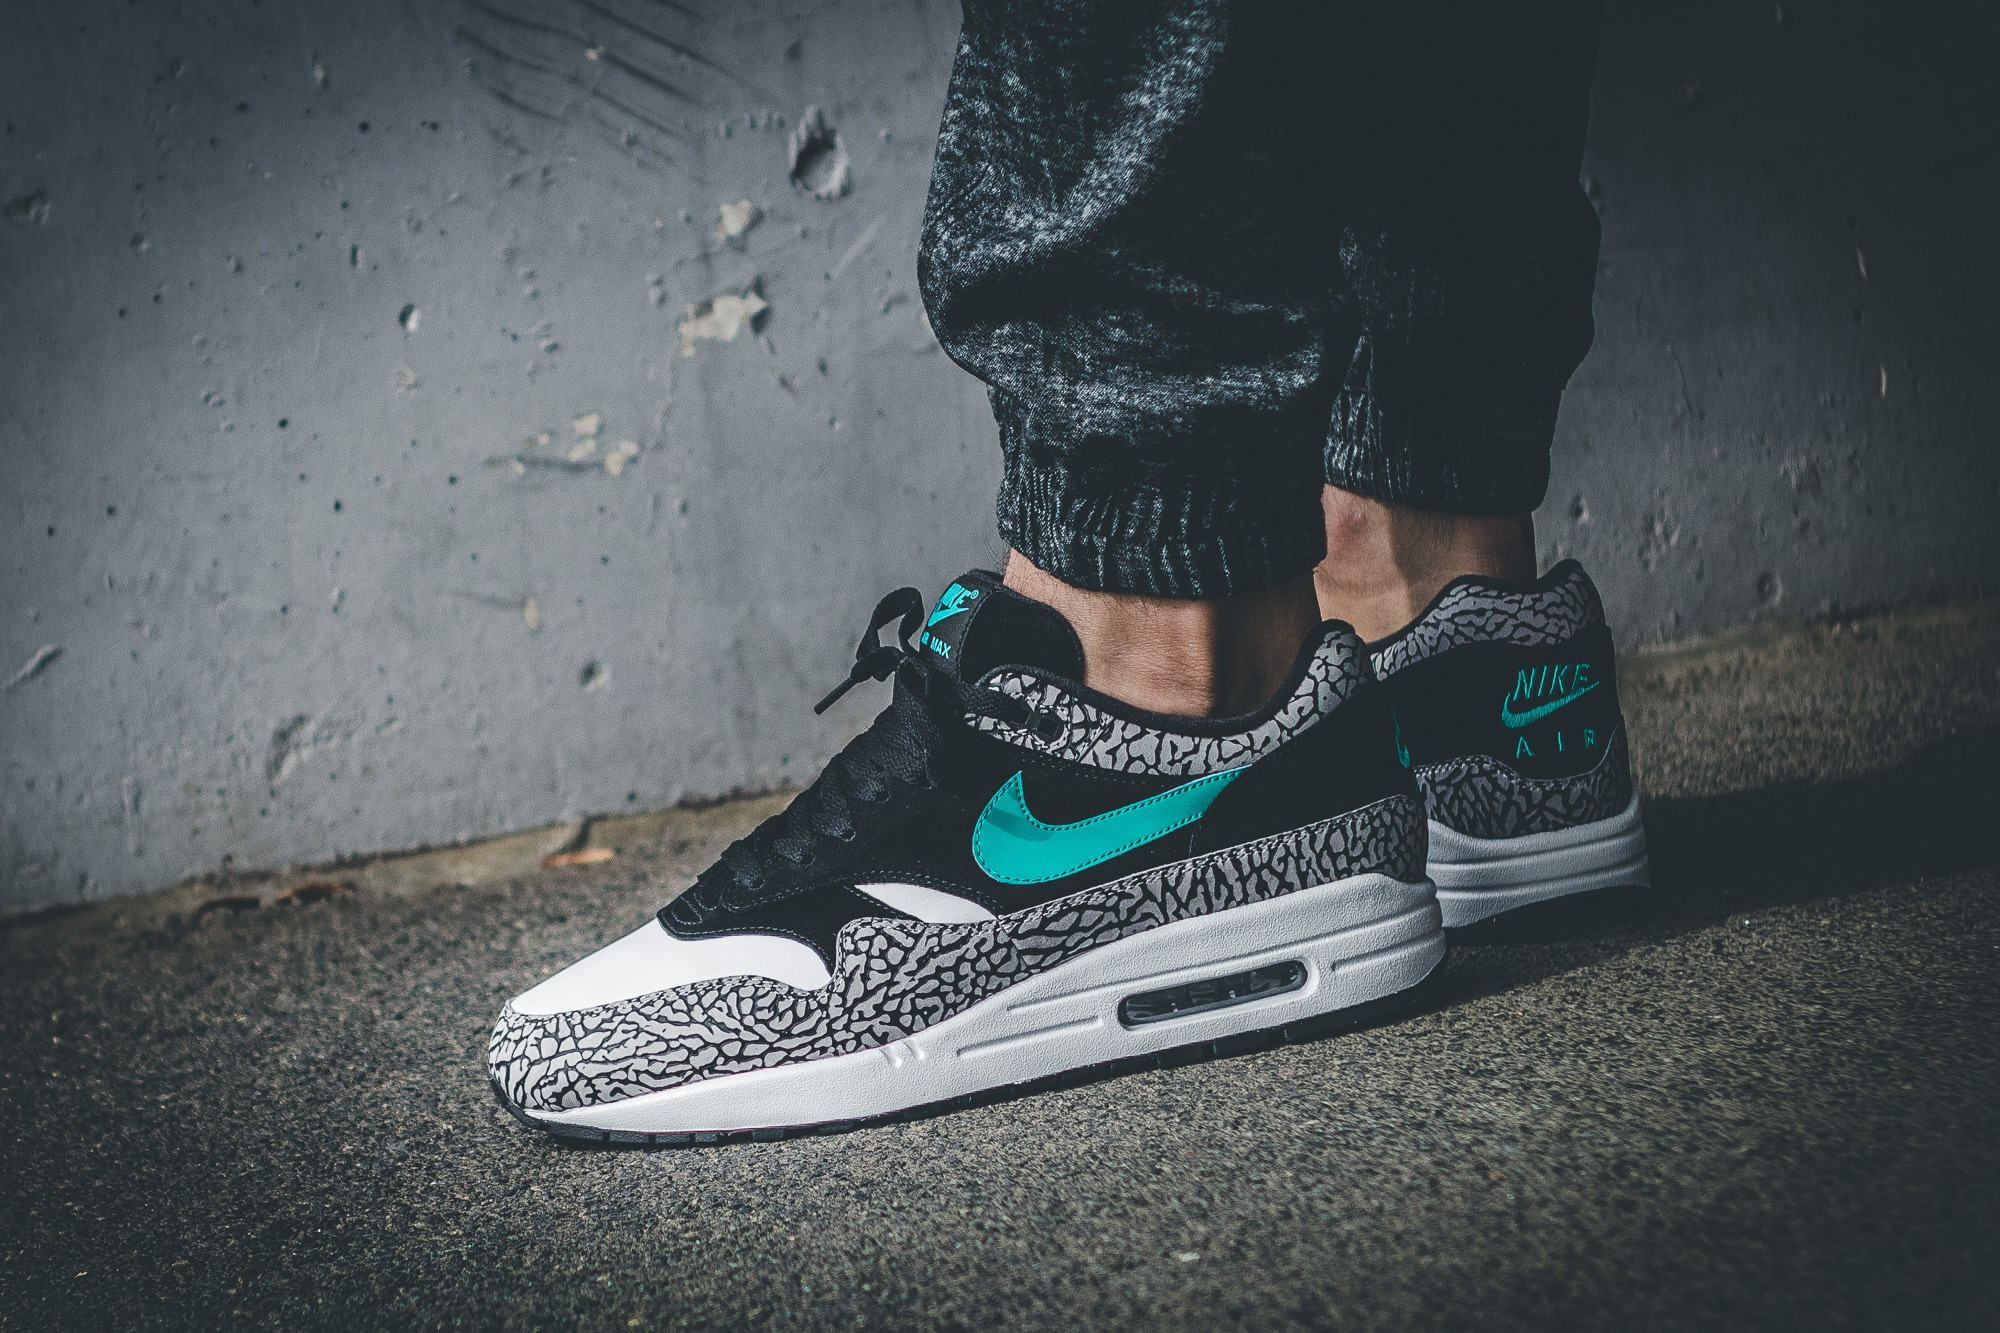 Nike Air Max 1 Premium Retro 2017 Atmos Elephant Mens sizes